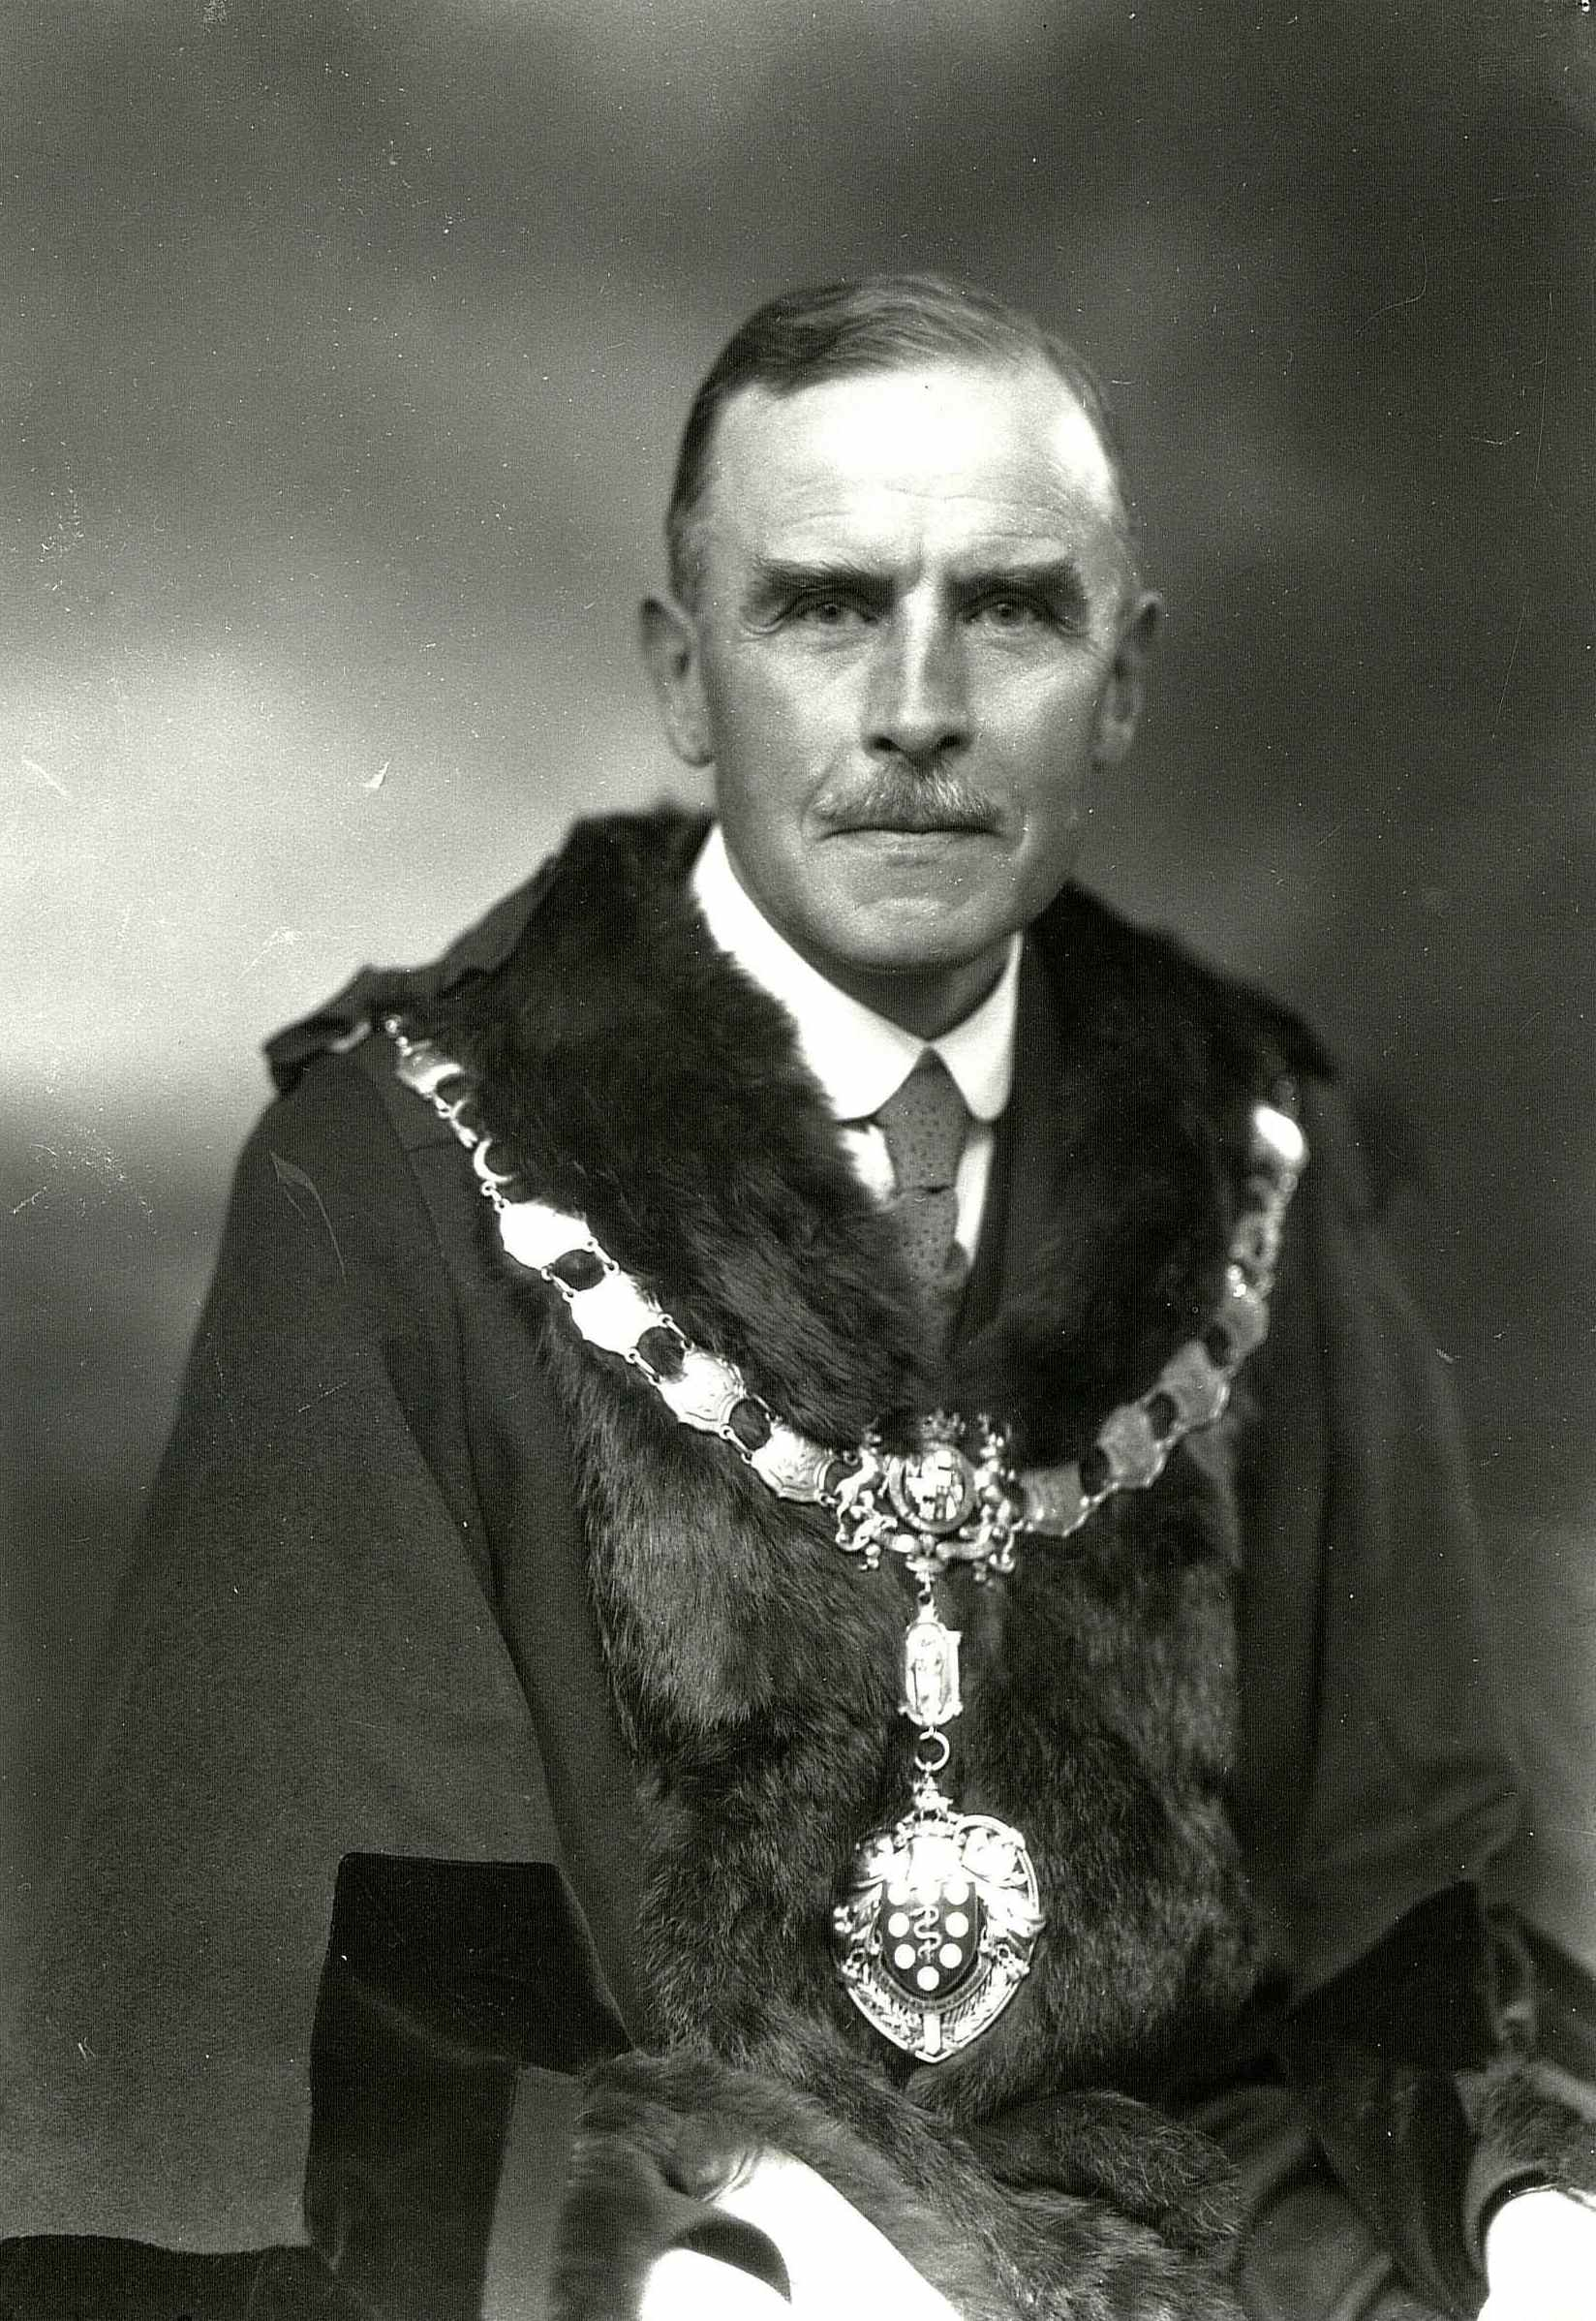 Councillor Arthur James Potter, Mayor of the Borough of Buxton, 1931/32 (proprietor of Potter's and Milligan's, Drapers, Buxton). Photographer Board, JR / Meddins, JD.